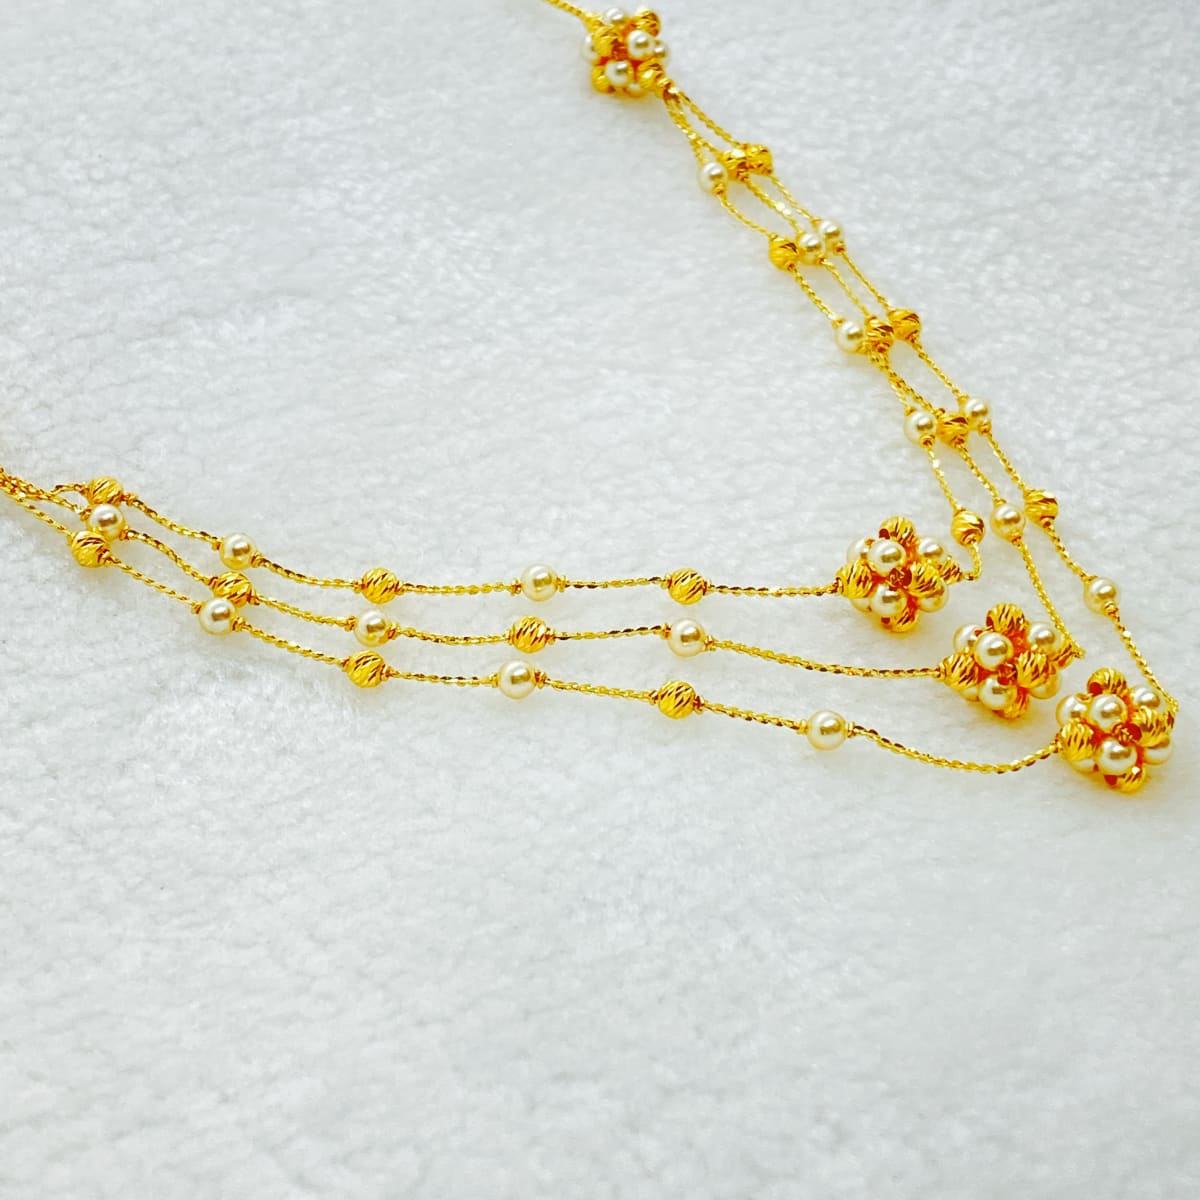 Fancy Exclusive Pearl 3step Chain Gj0223